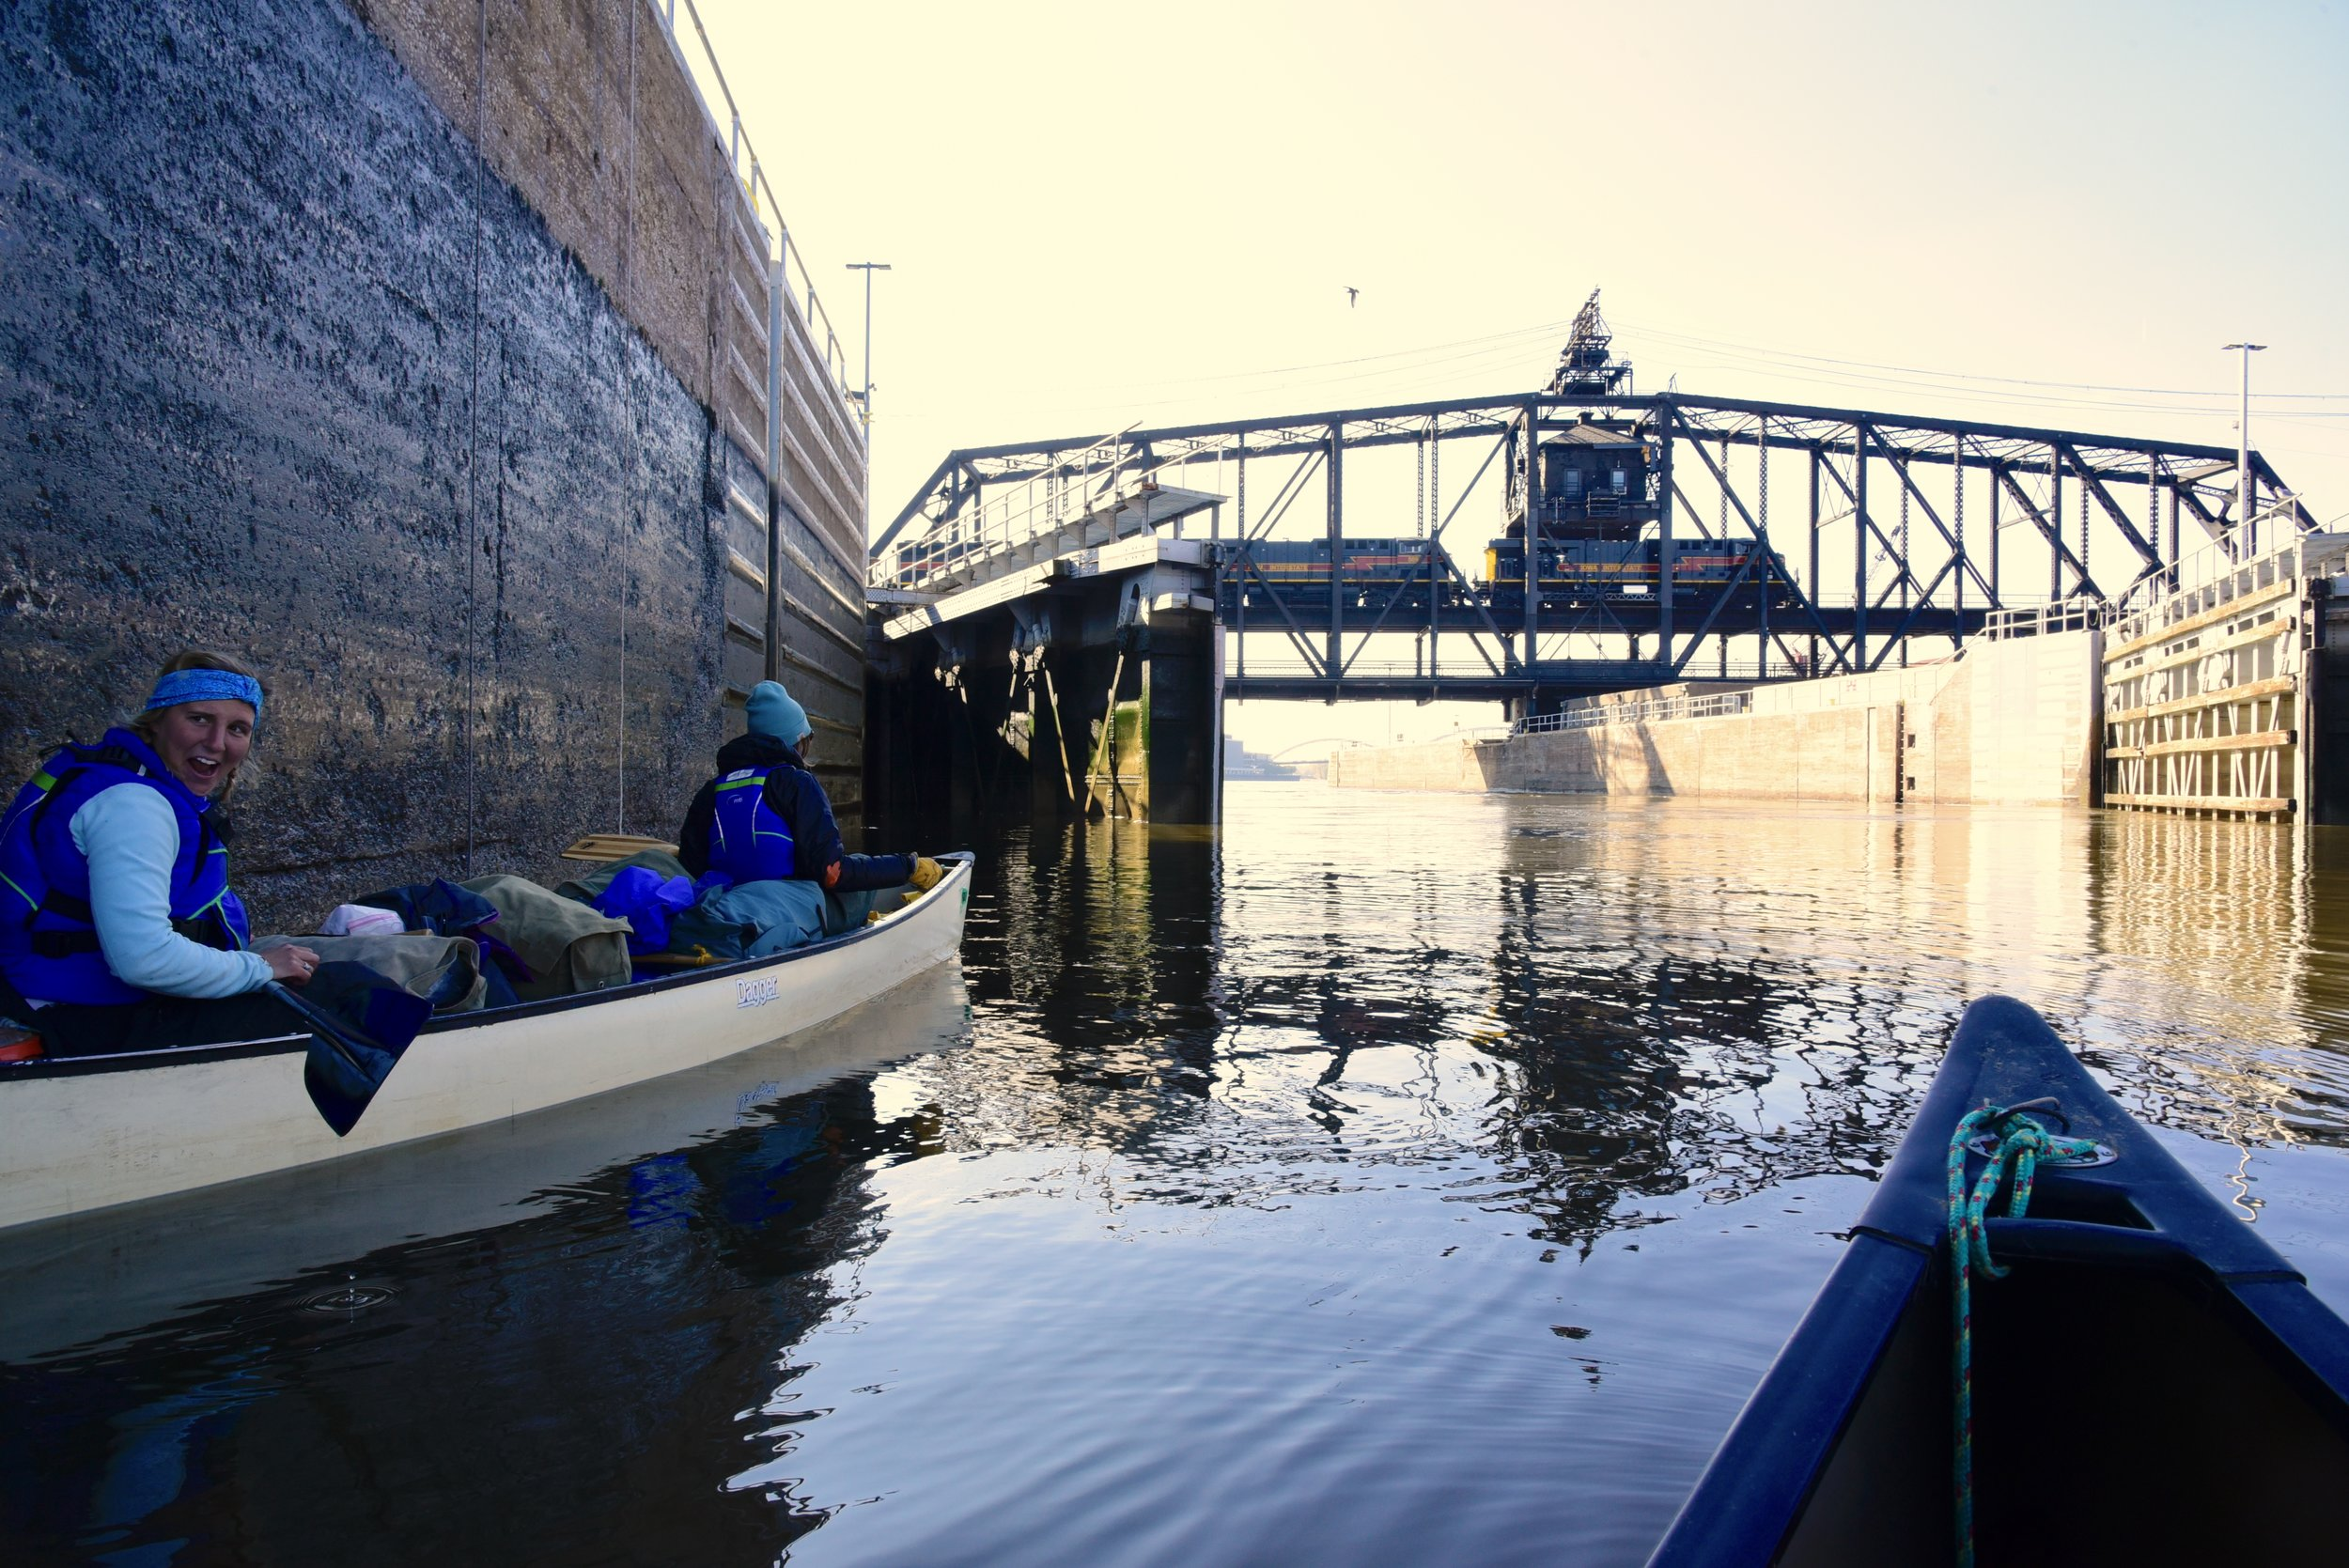 Grace Werner, left, and Mandy Hoffmeister wait to pass through Lock and Dam 15 on the Mississippi River as a train passes overhead. Werner and Hoffmeister, along with Siri Berg-Moberg and Grace Heneghan, paddled 1,800 miles of the Mississippi in the fall of 2017. Together they raised awareness and $3,500 for the YMCA program,  Girls Outdoor Leadership Development , a program that gets underrepresented youth outside to gain wilderness skills and confidence.